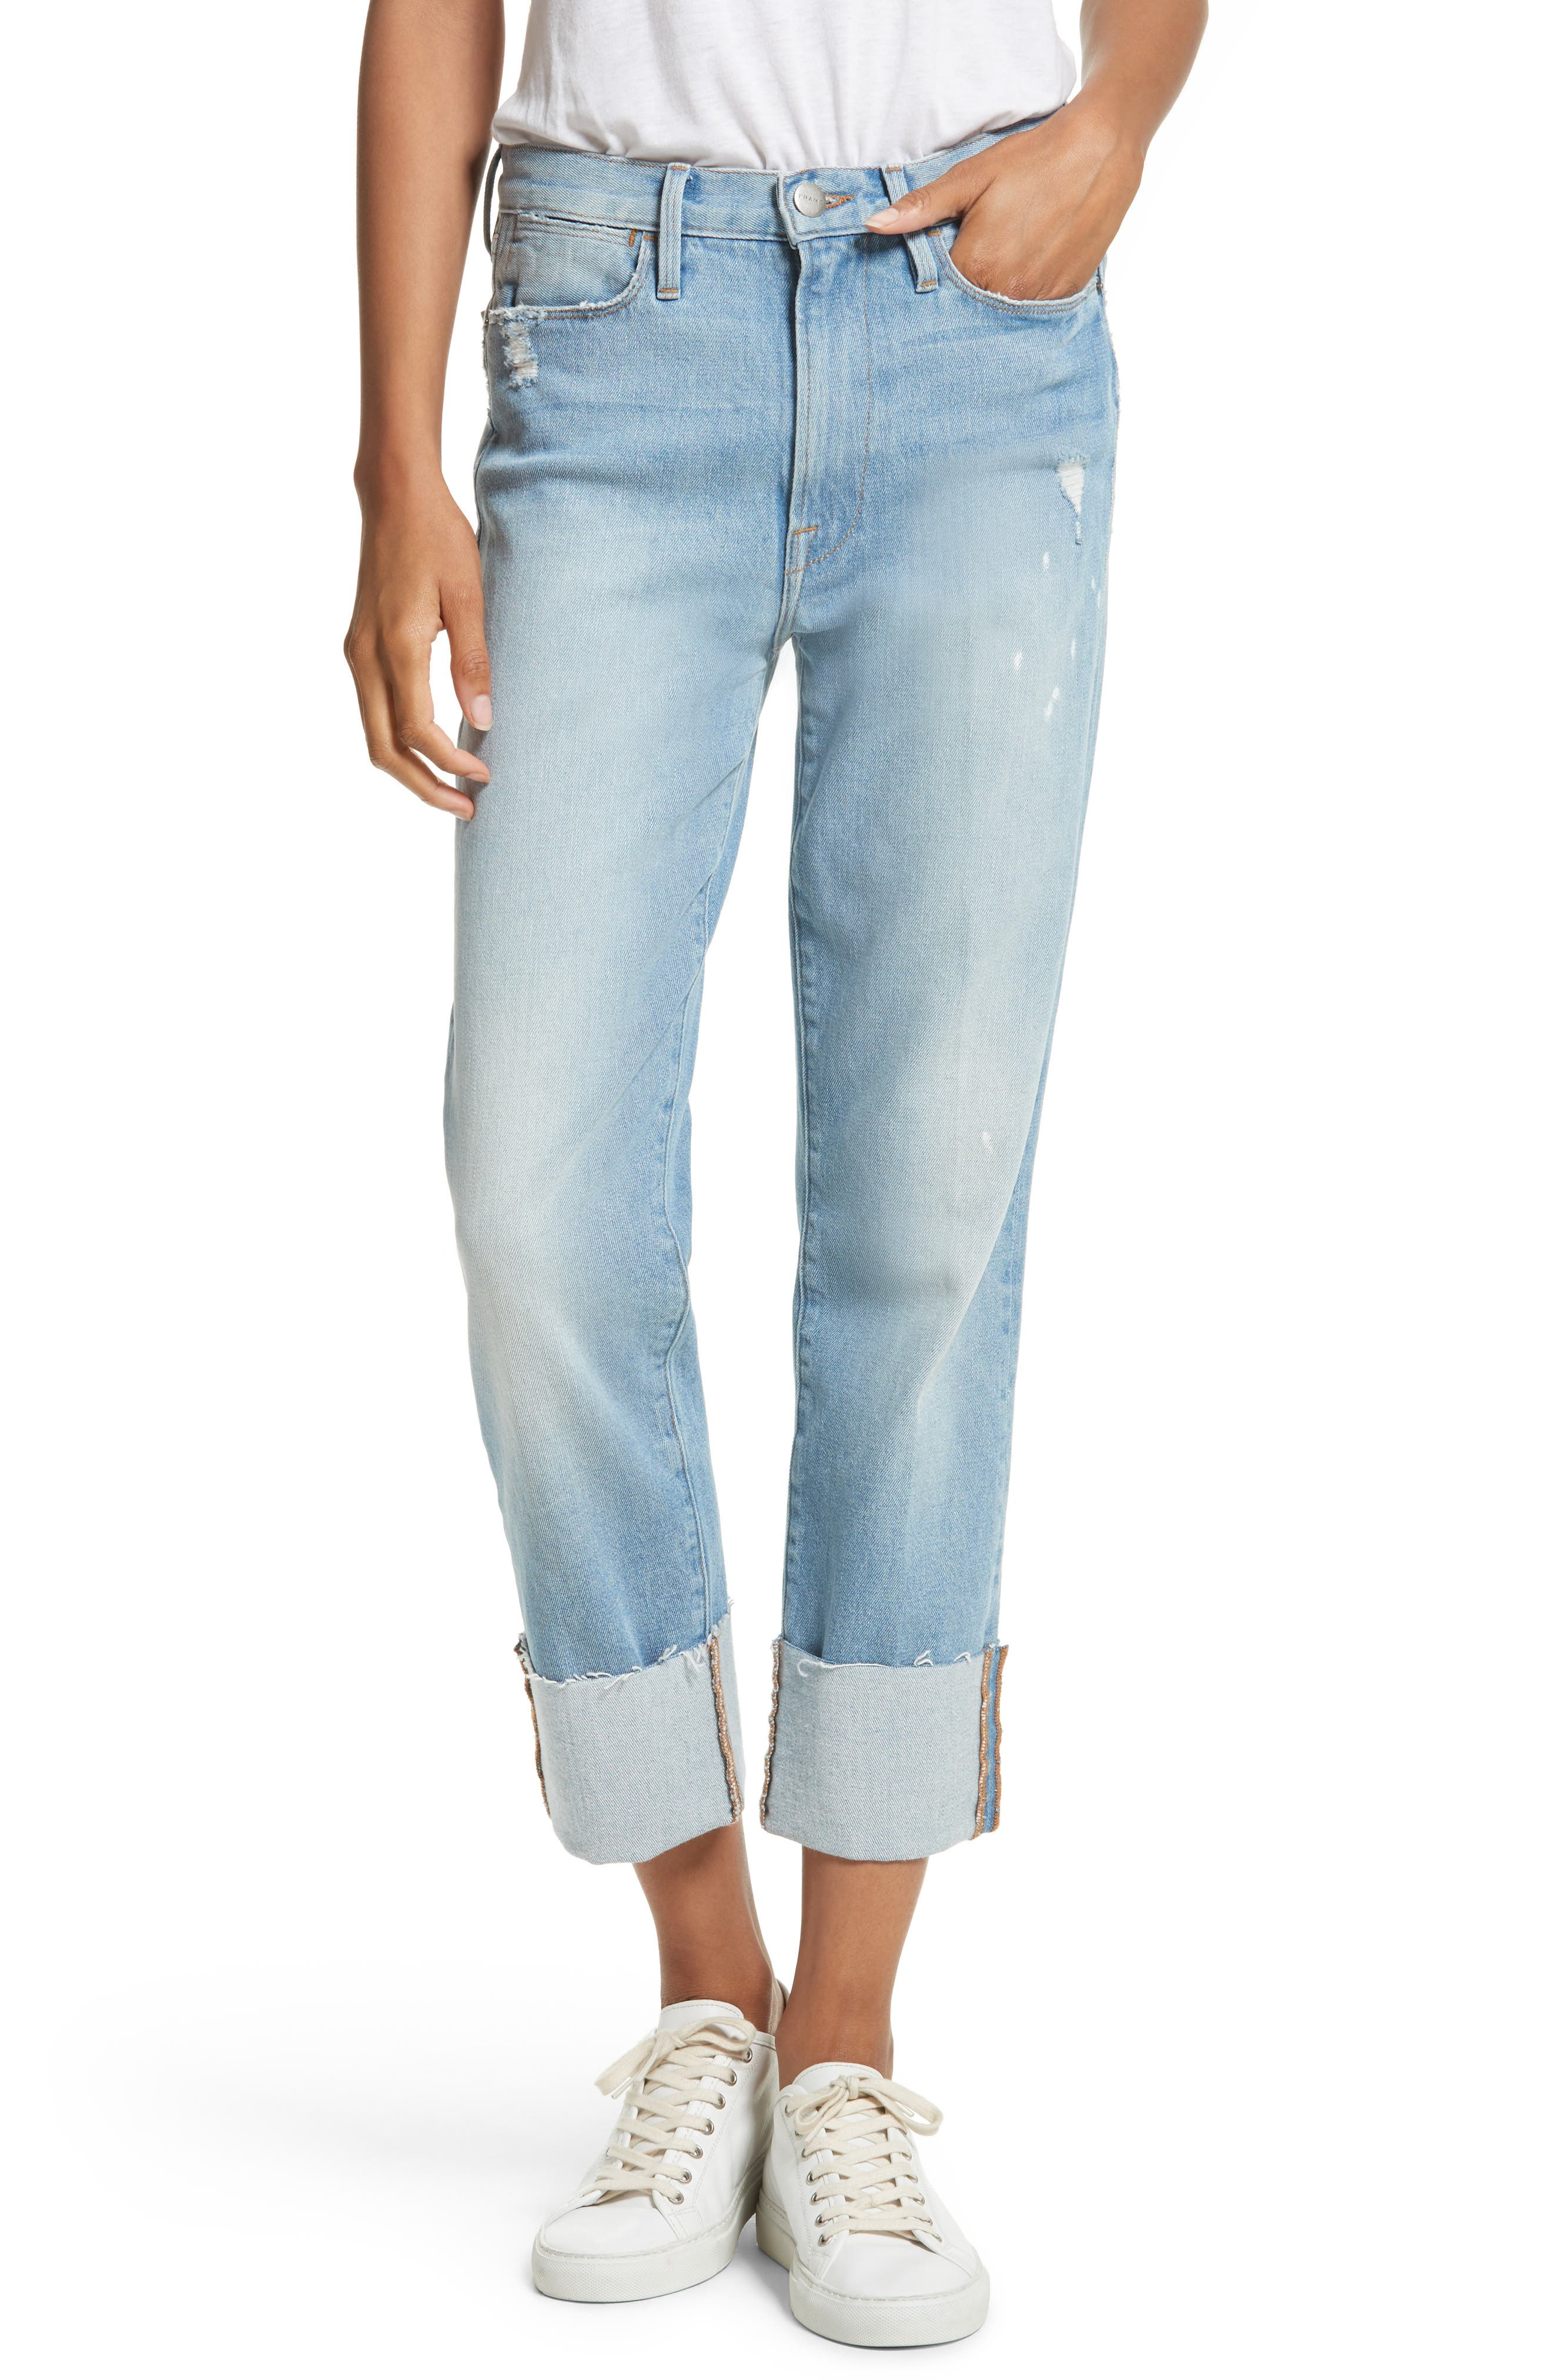 Alternate Image 1 Selected - FRAME Le High Straight Leg Cuffed Jeans (Berkshire)